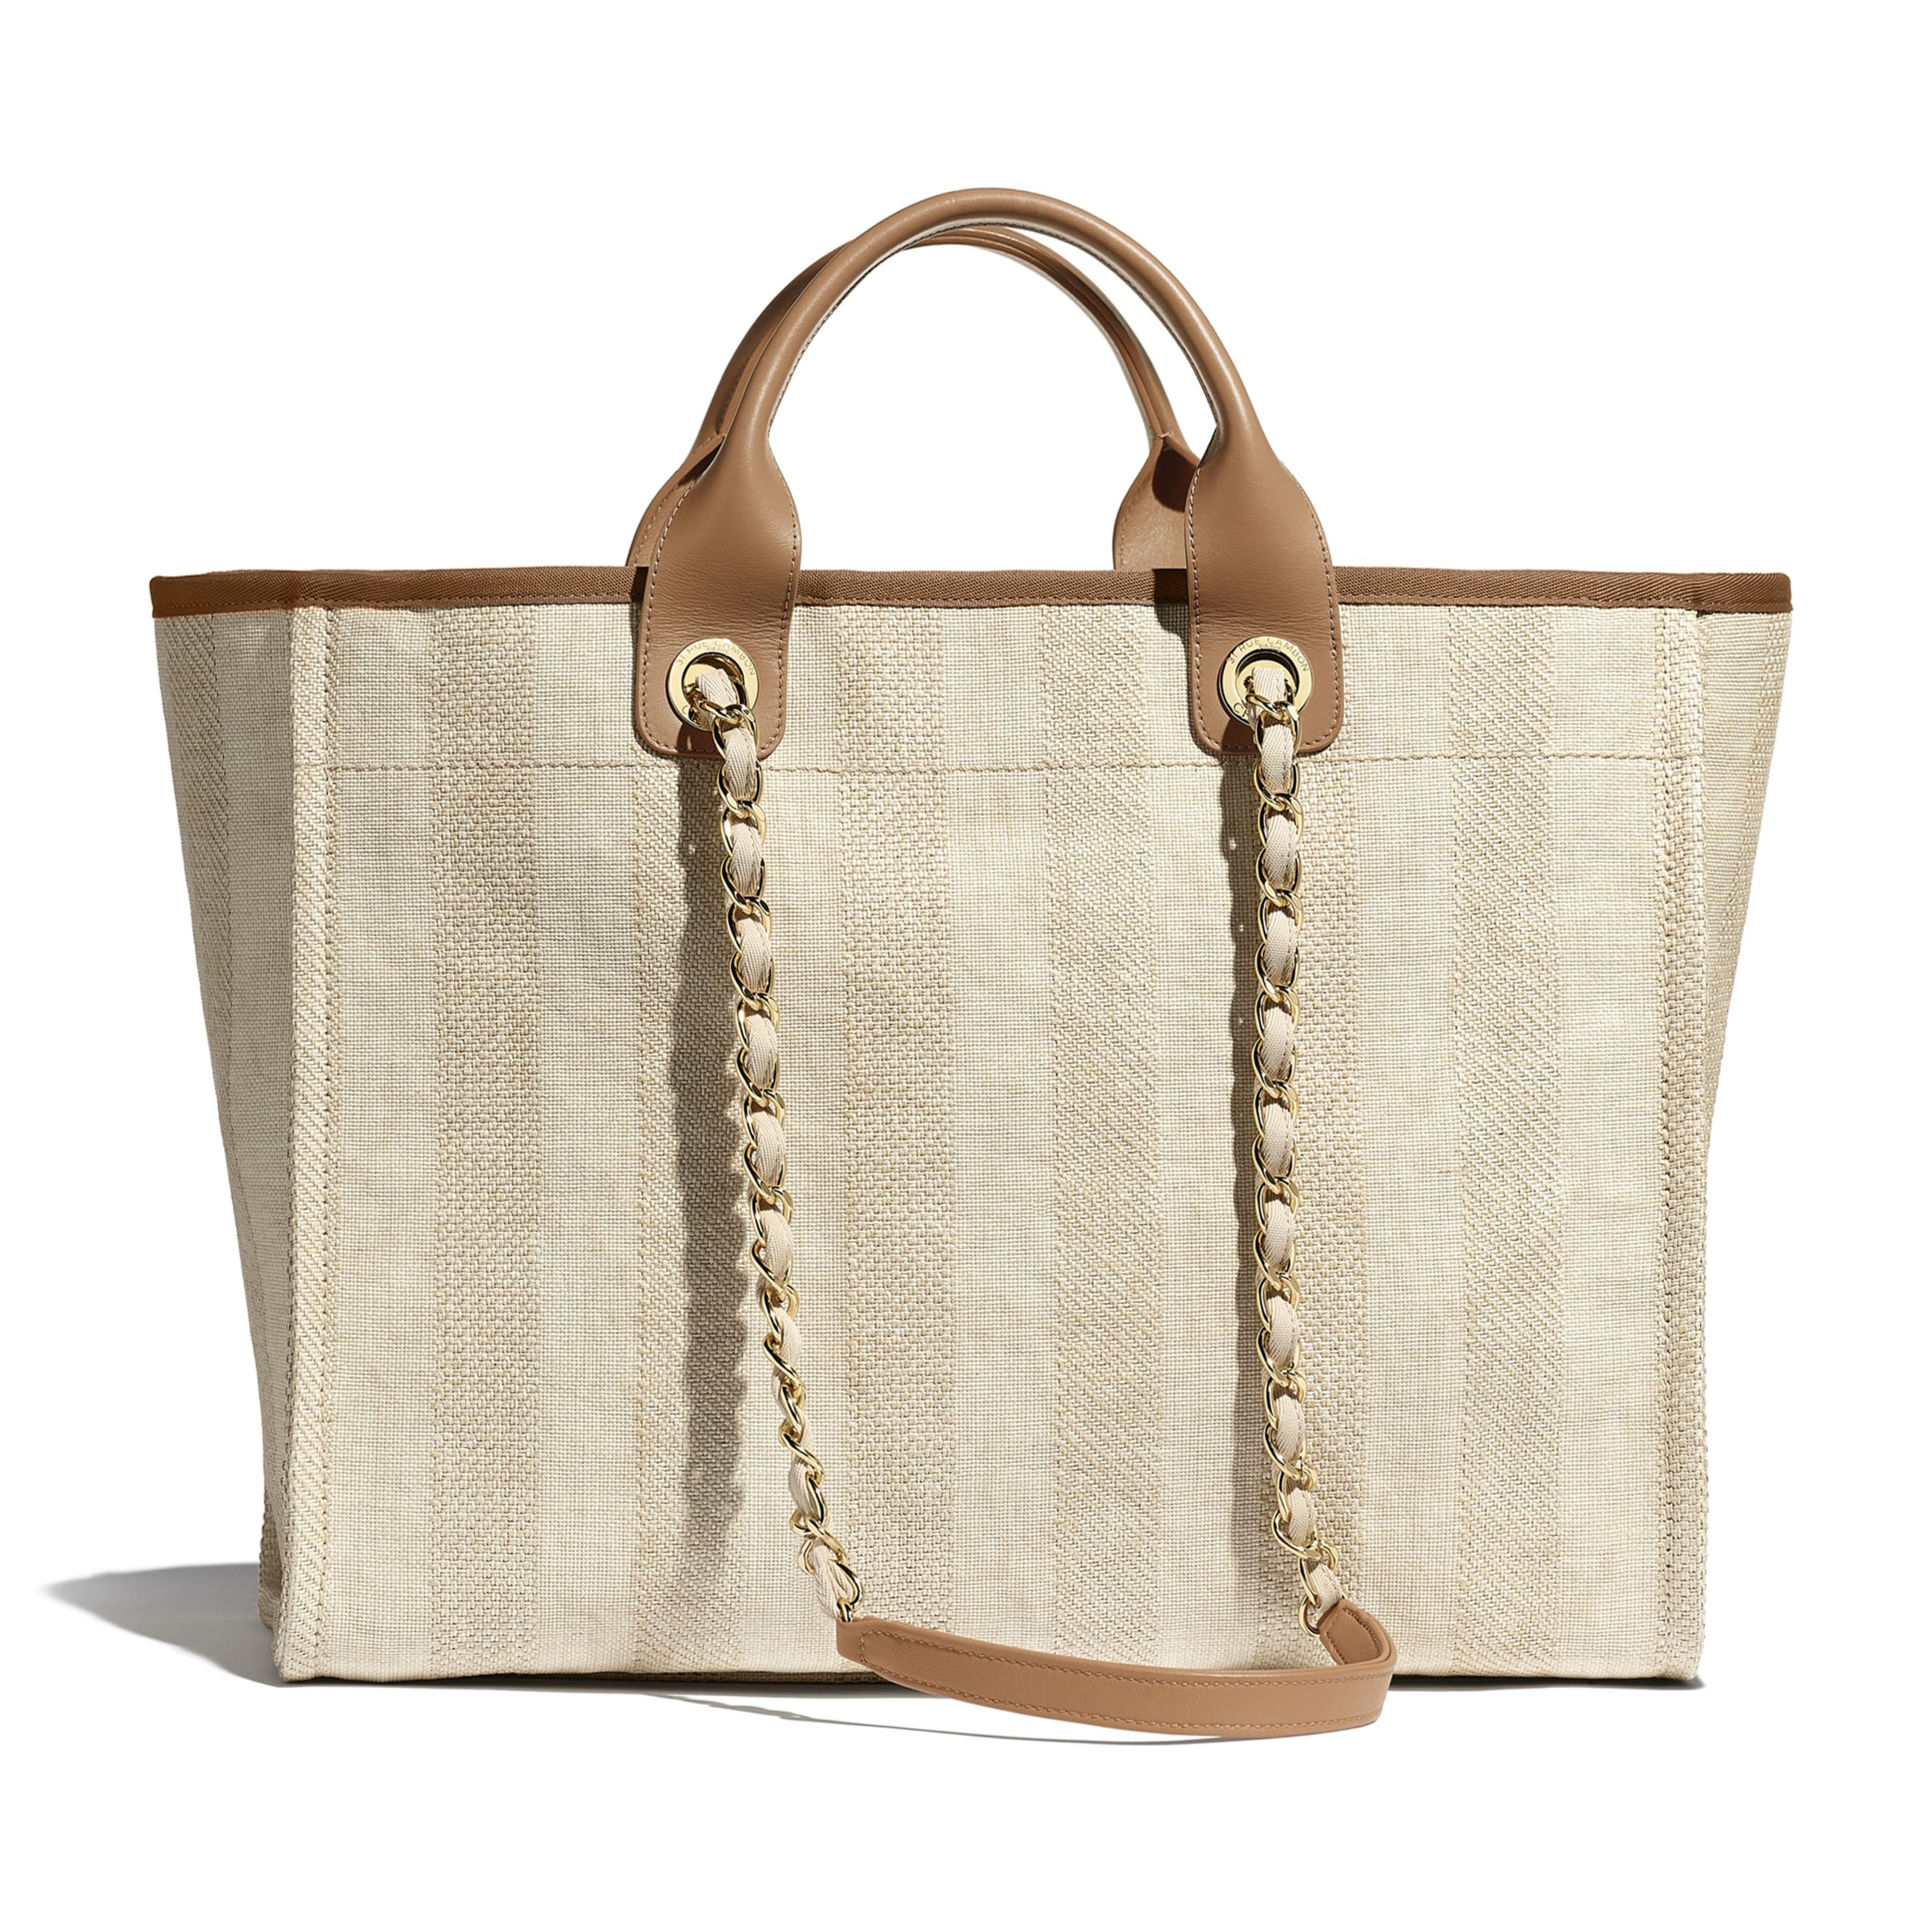 Shopping Bag - Beige - Mixed Fibres, Calfskin & Gold-Tone Metal - Alternative view - see standard sized version